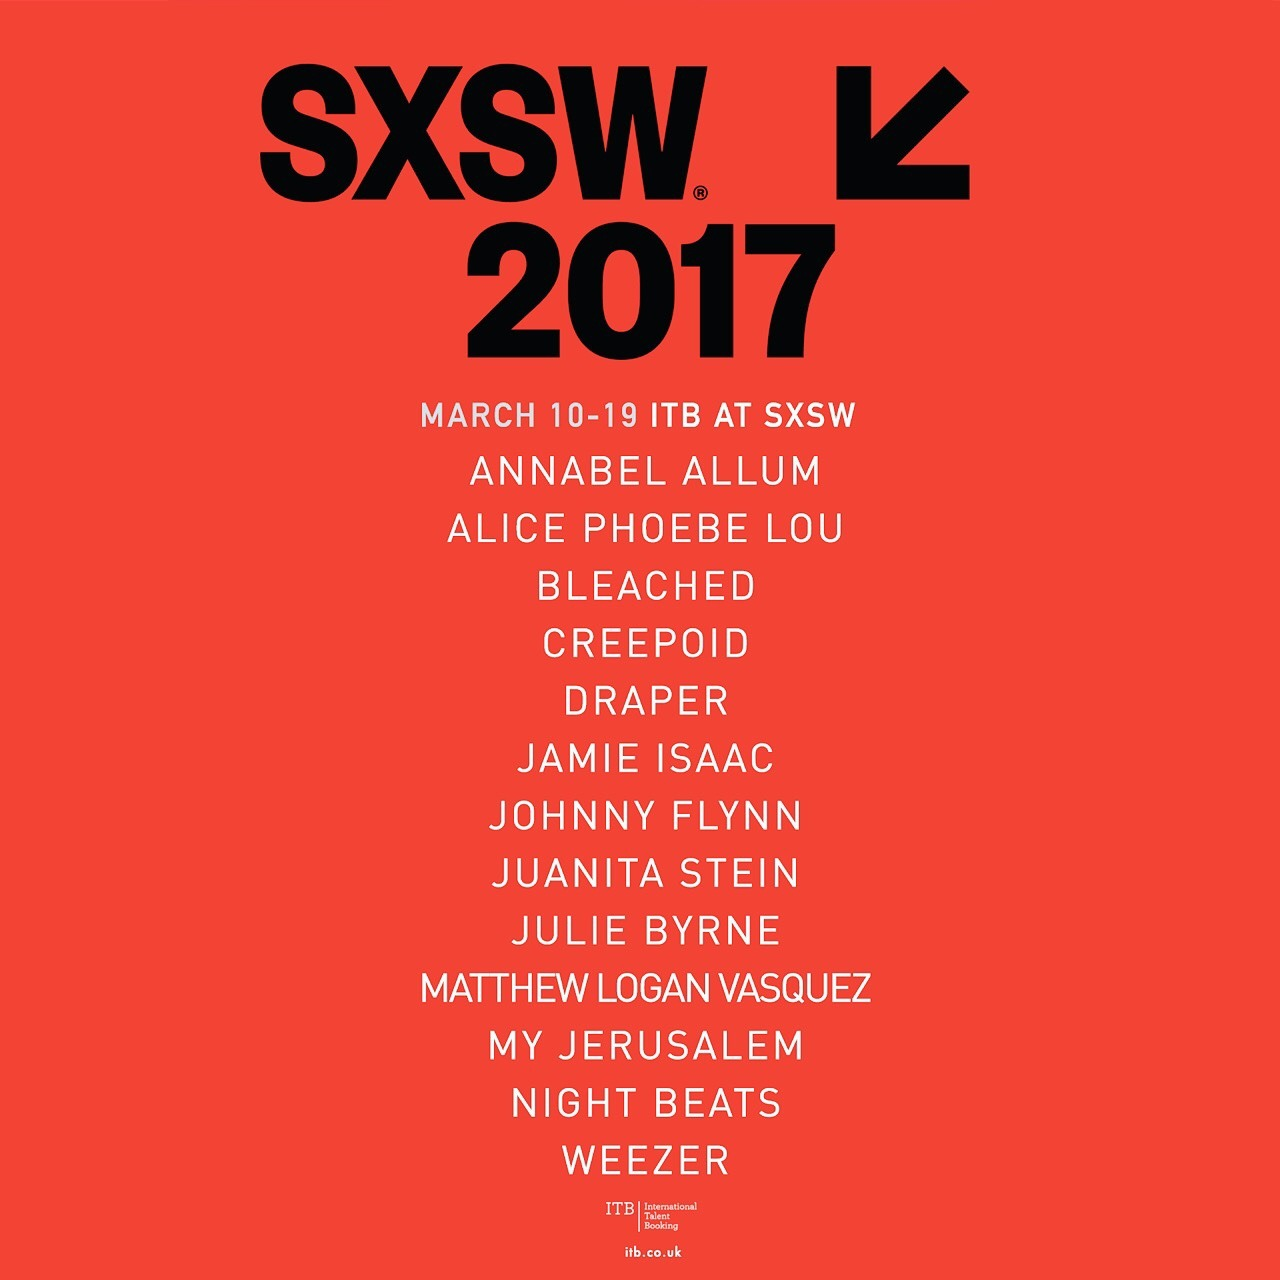 🎈🎈🎈Psyched to be playing SXSW this year!!! ✨🌟✨🌟